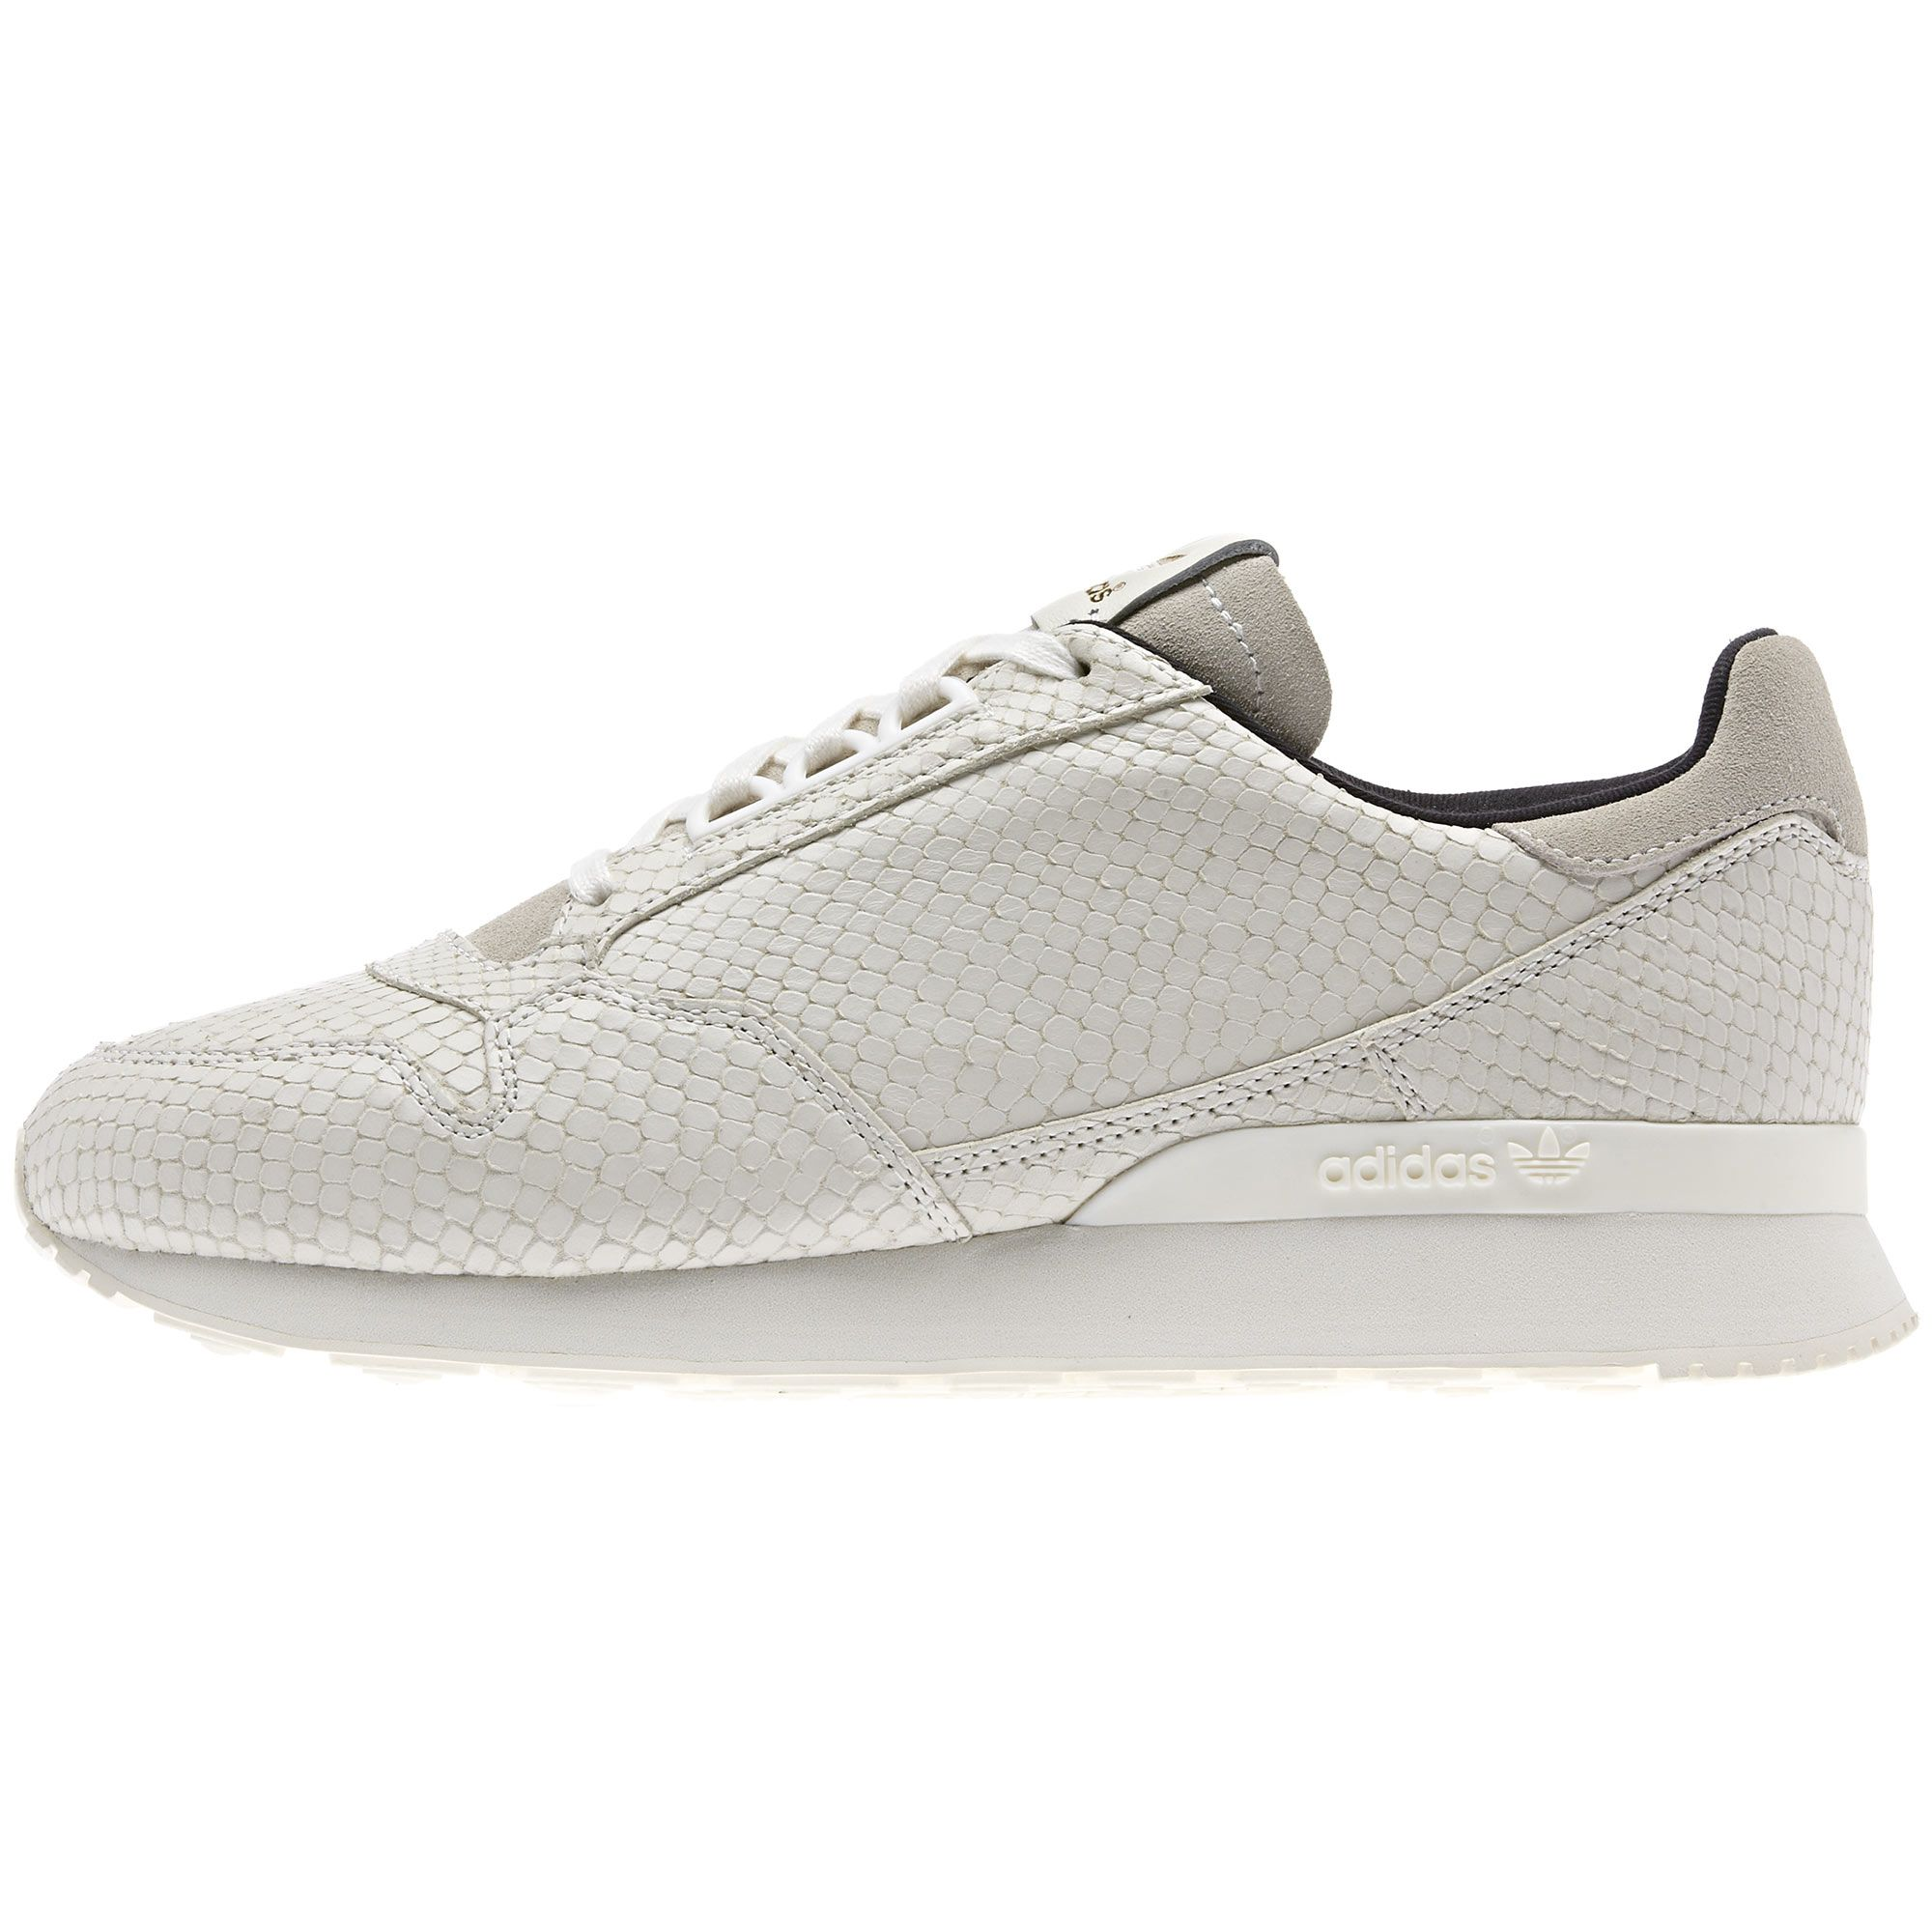 new product d4edc be107 ... wholesale adidas womens zx 500 og snake shoes adidas canada 624a1 3bcd7